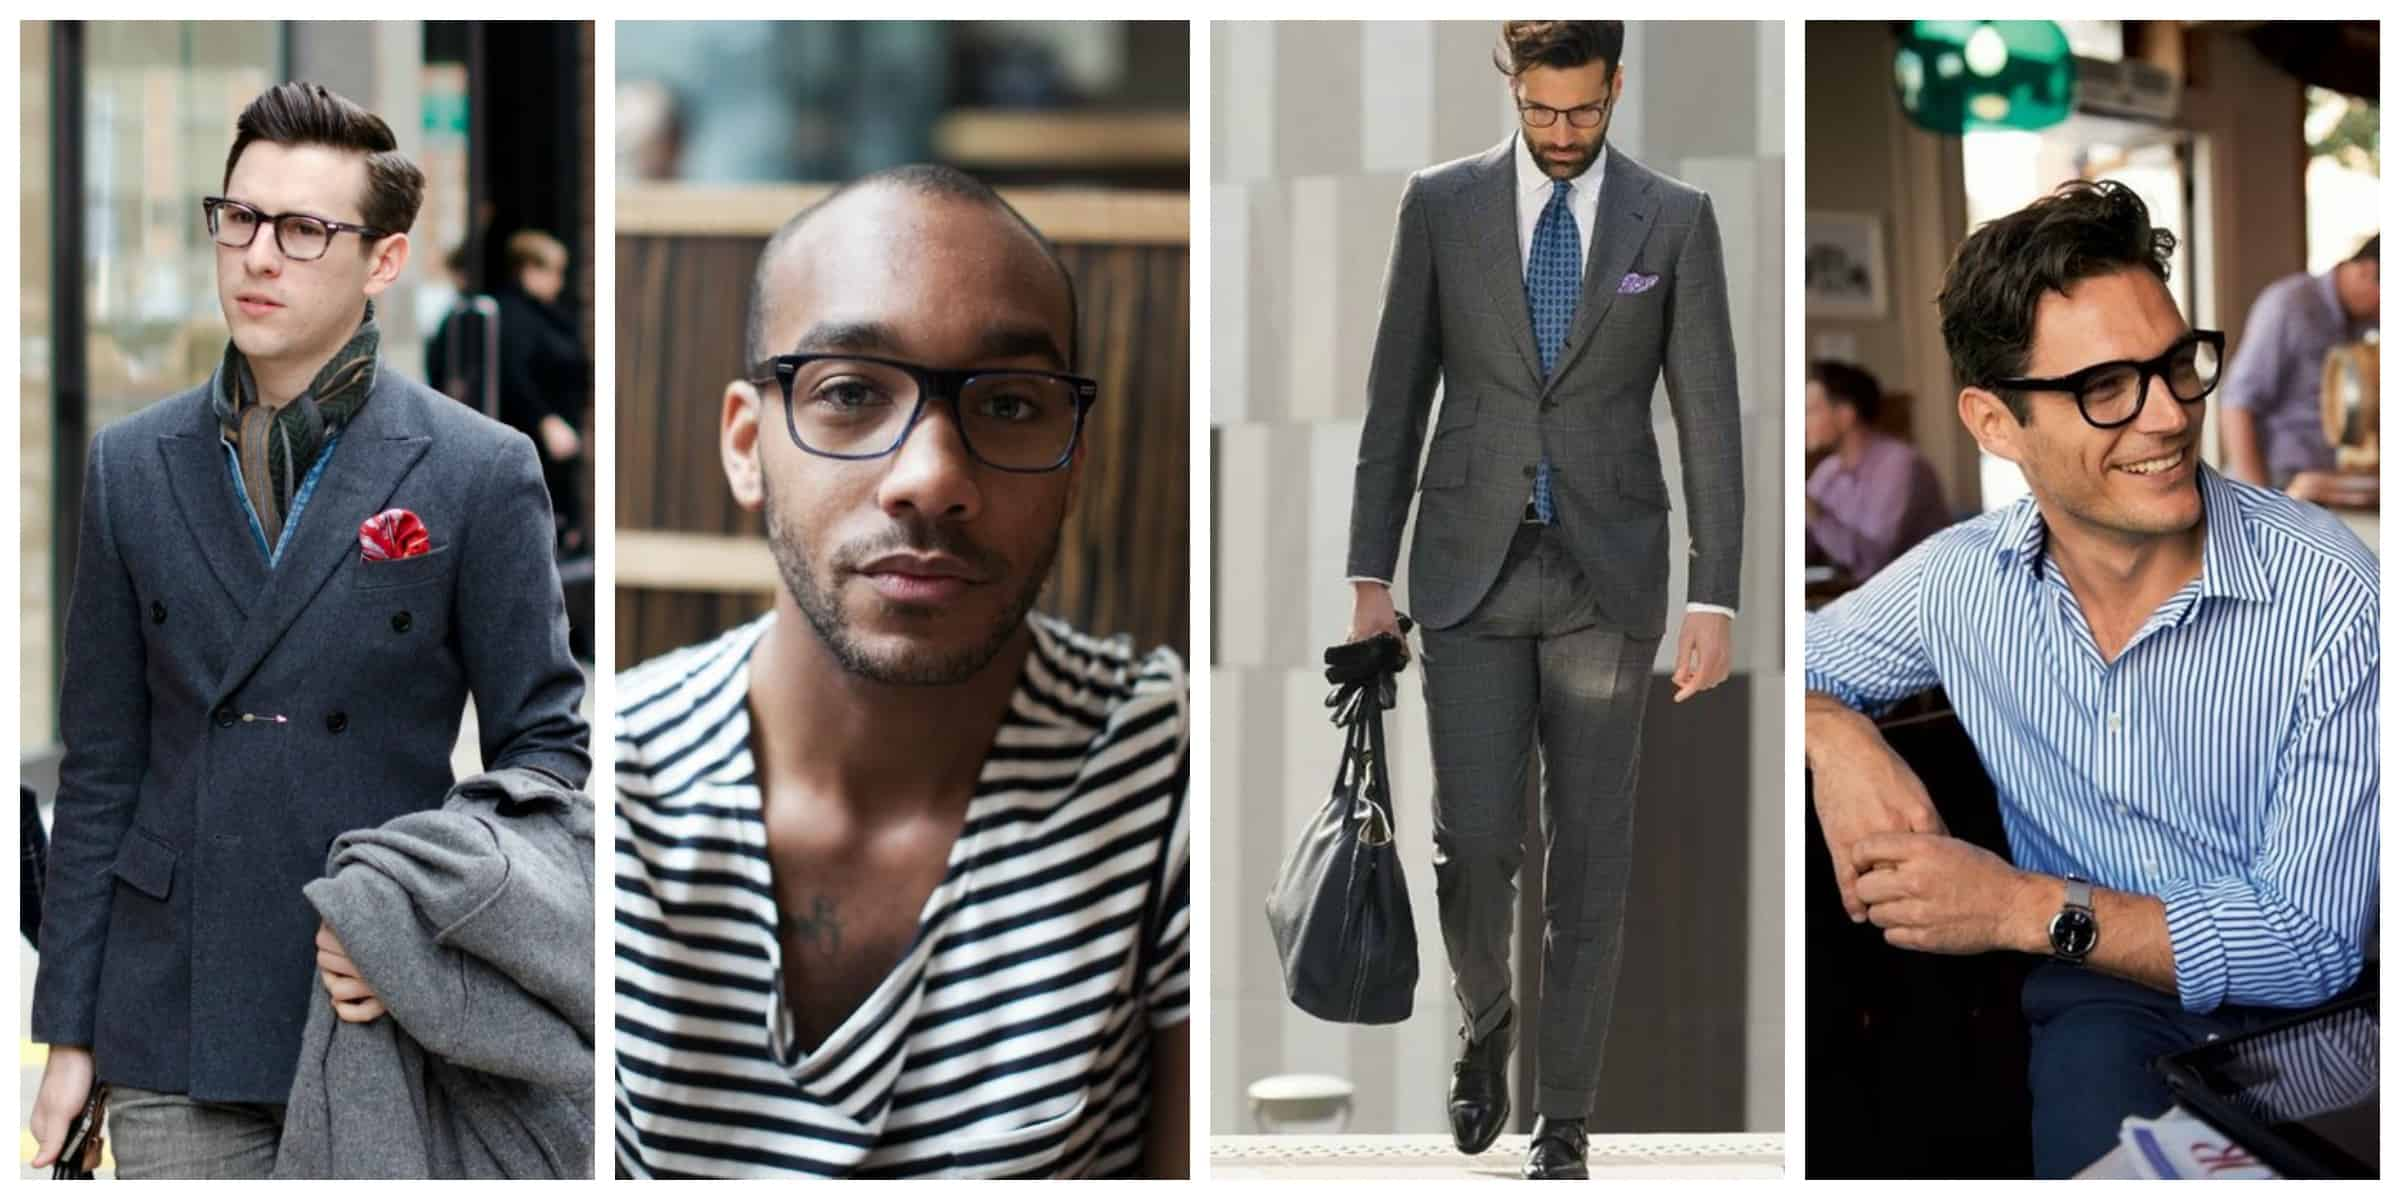 d91e4635466 EYEGLASSES Trends 2017  What To Wear  – The Fashion Tag Blog